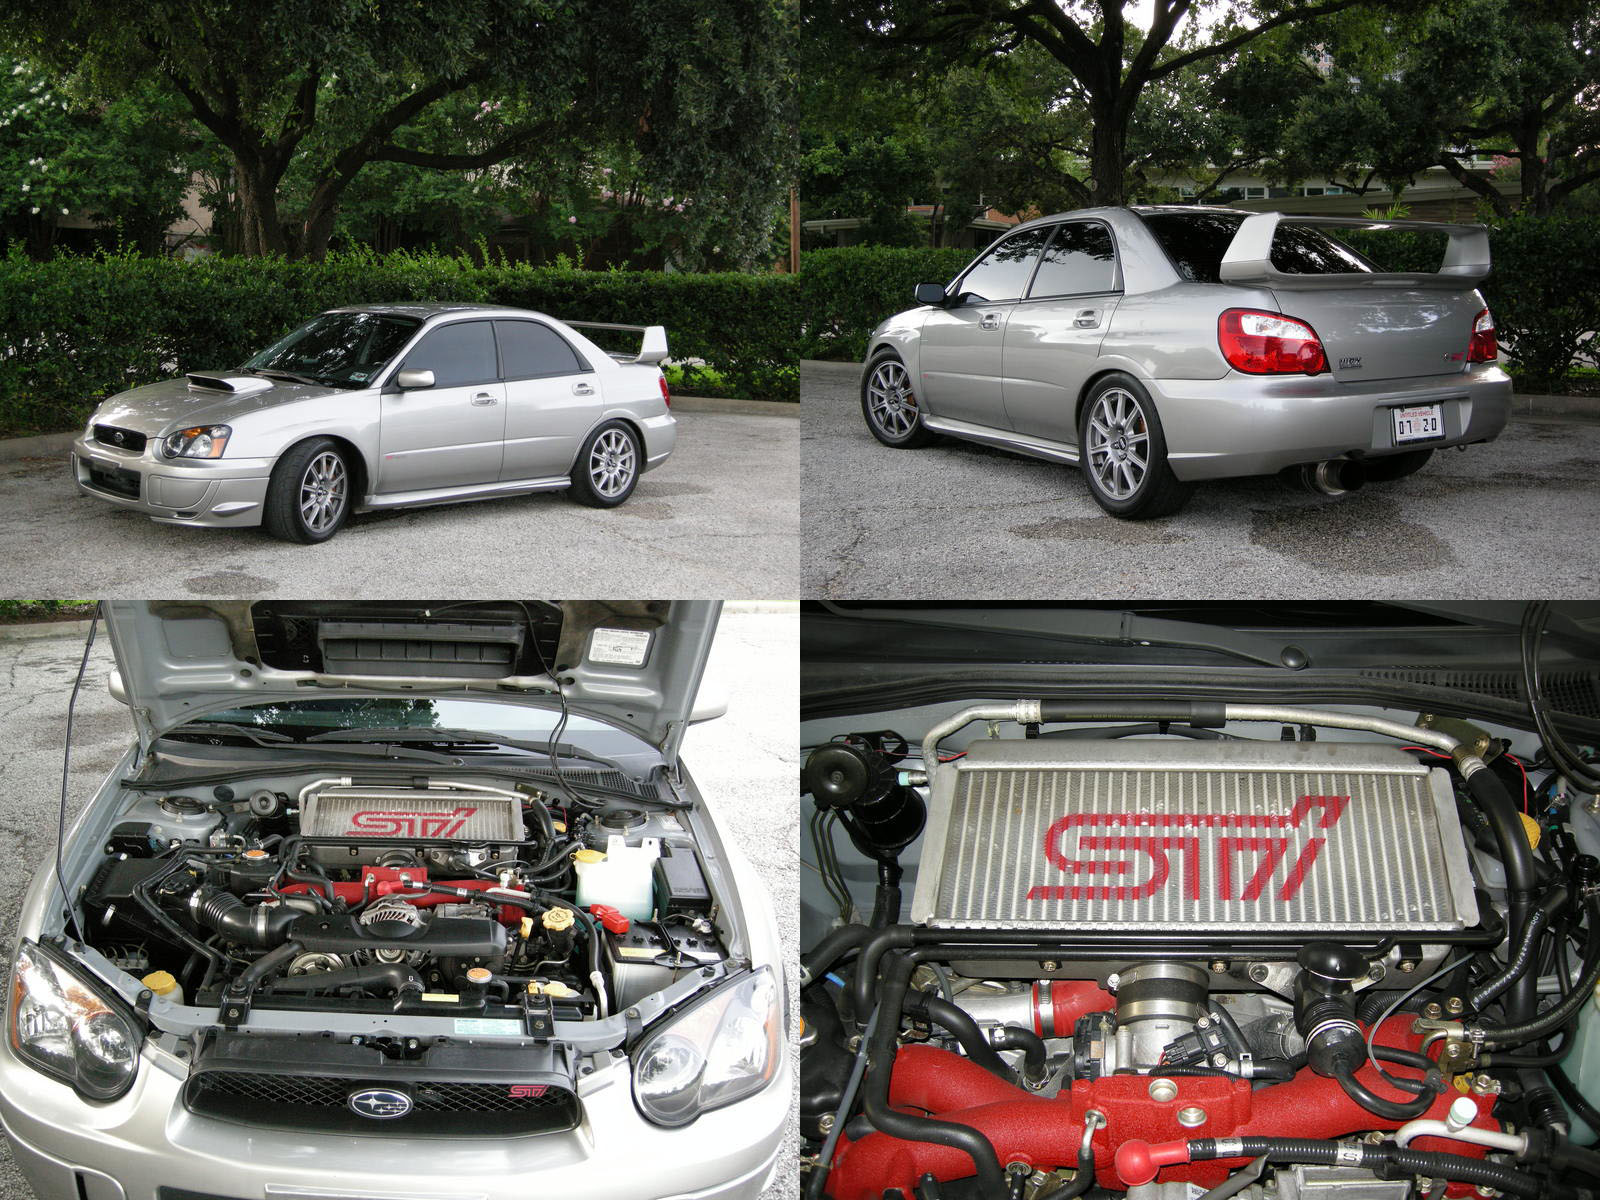 2005 subaru impreza wrx sti 1 4 mile drag racing timeslip. Black Bedroom Furniture Sets. Home Design Ideas